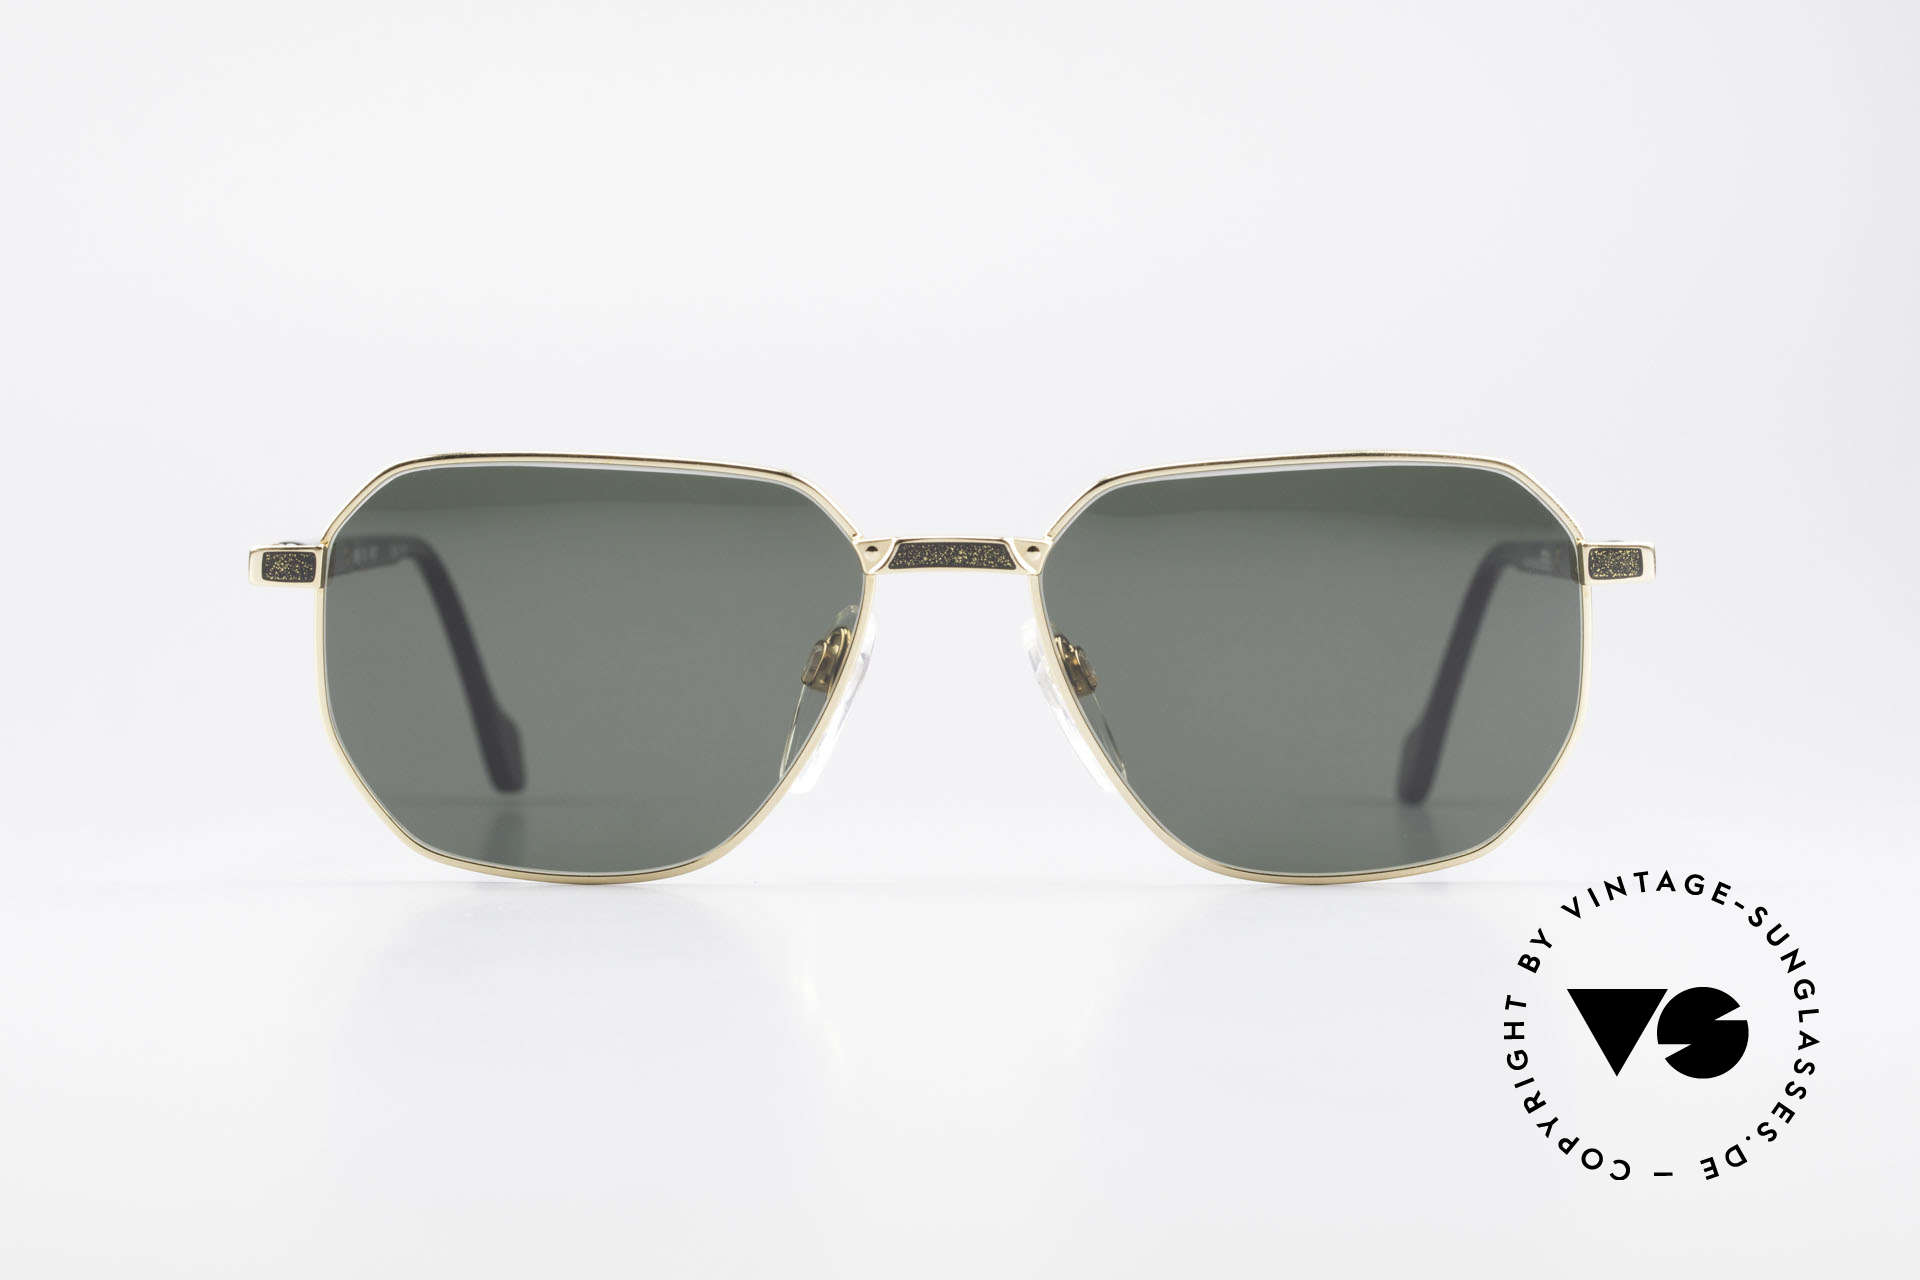 S.T. Dupont D006 Luxury Sunglasses Vintage, top craftsmanship (all Dupont frames are gold-plated), Made for Men